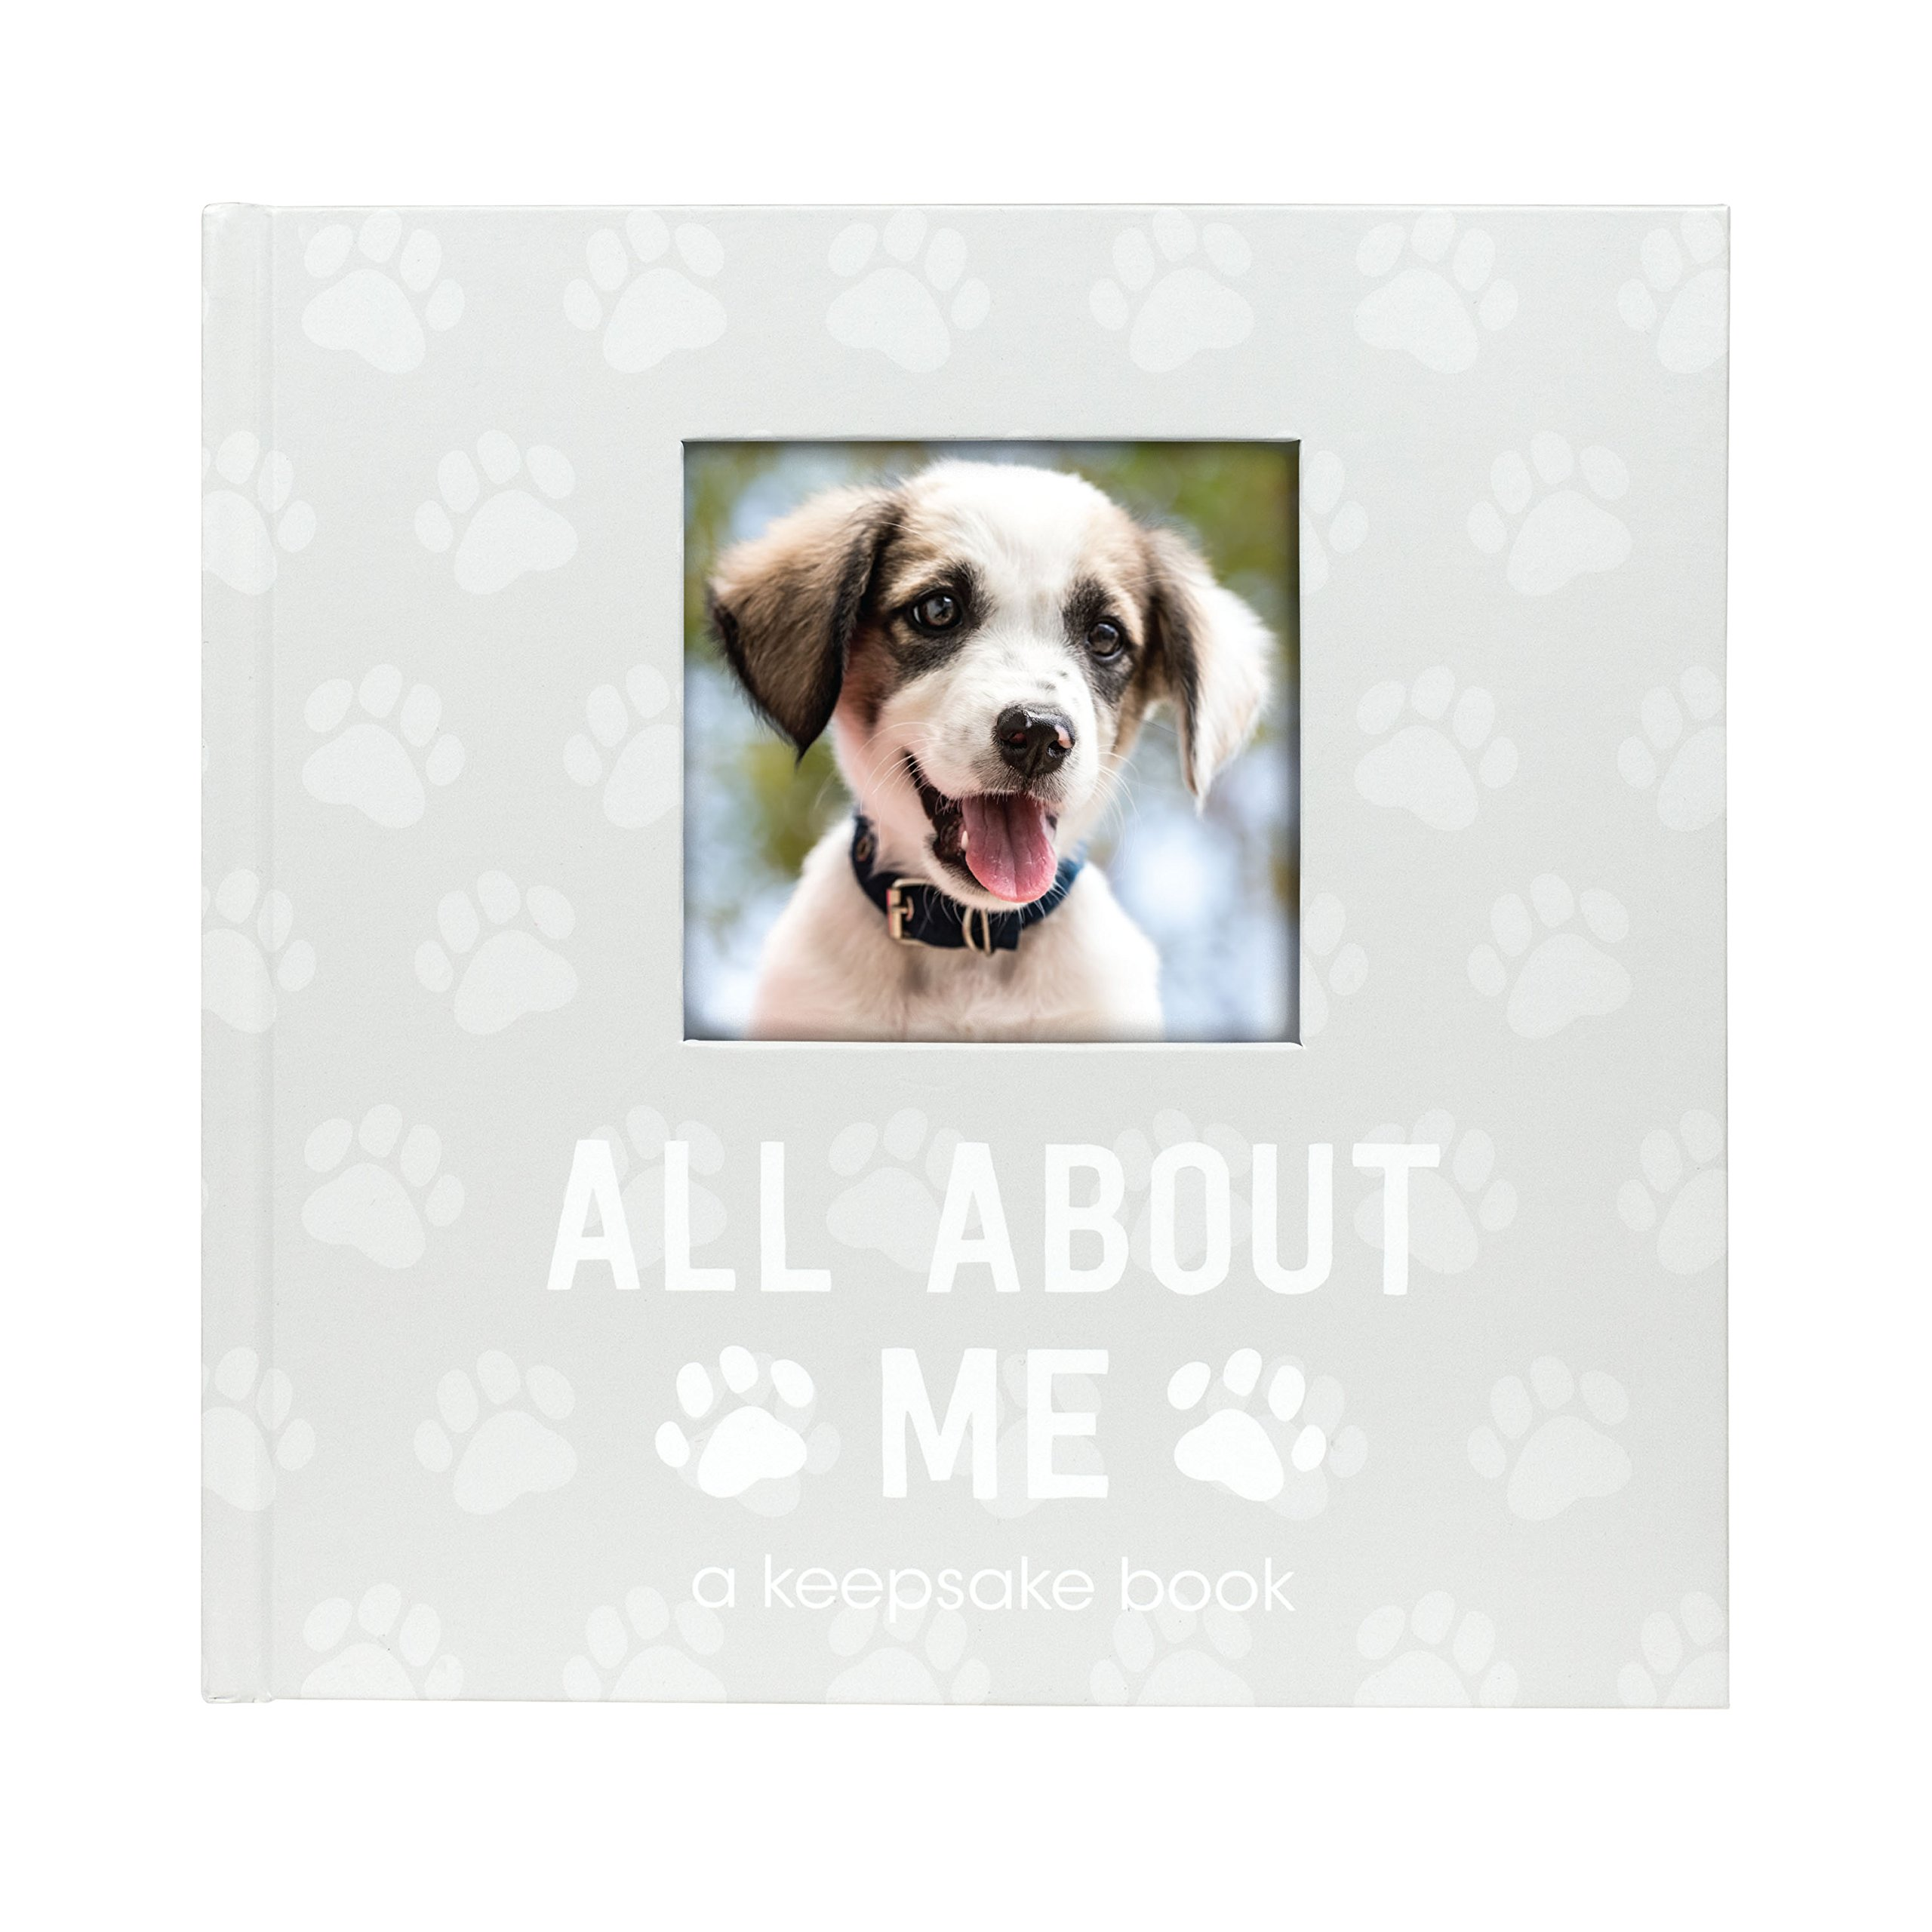 Pearhead Pet Milestone Keepsake, Paw Print Design, Dog Owner Gifts, Cherish Every Memory of Your Pup, Perfect for Dog People or New Puppy Pet Owners by Pearhead